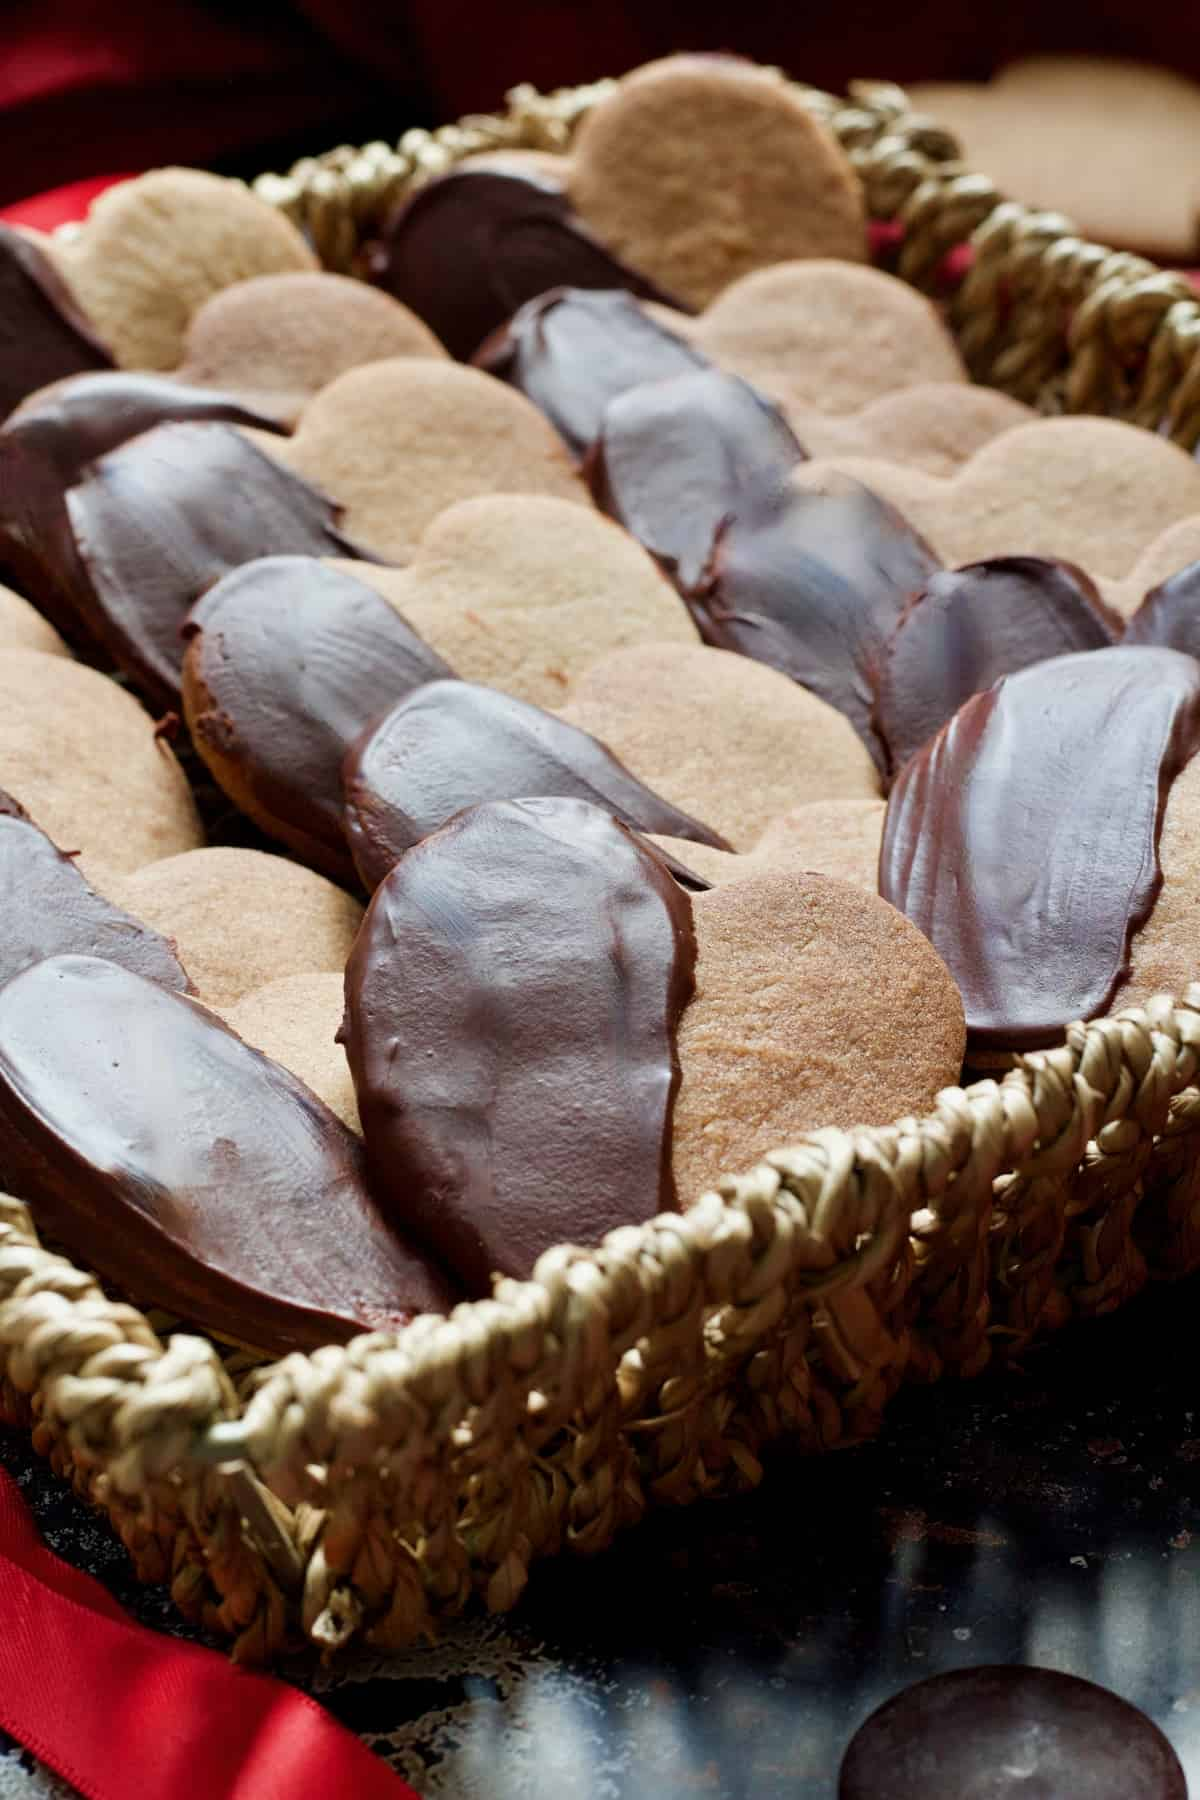 Close up of cinnamon cookies in a basket.